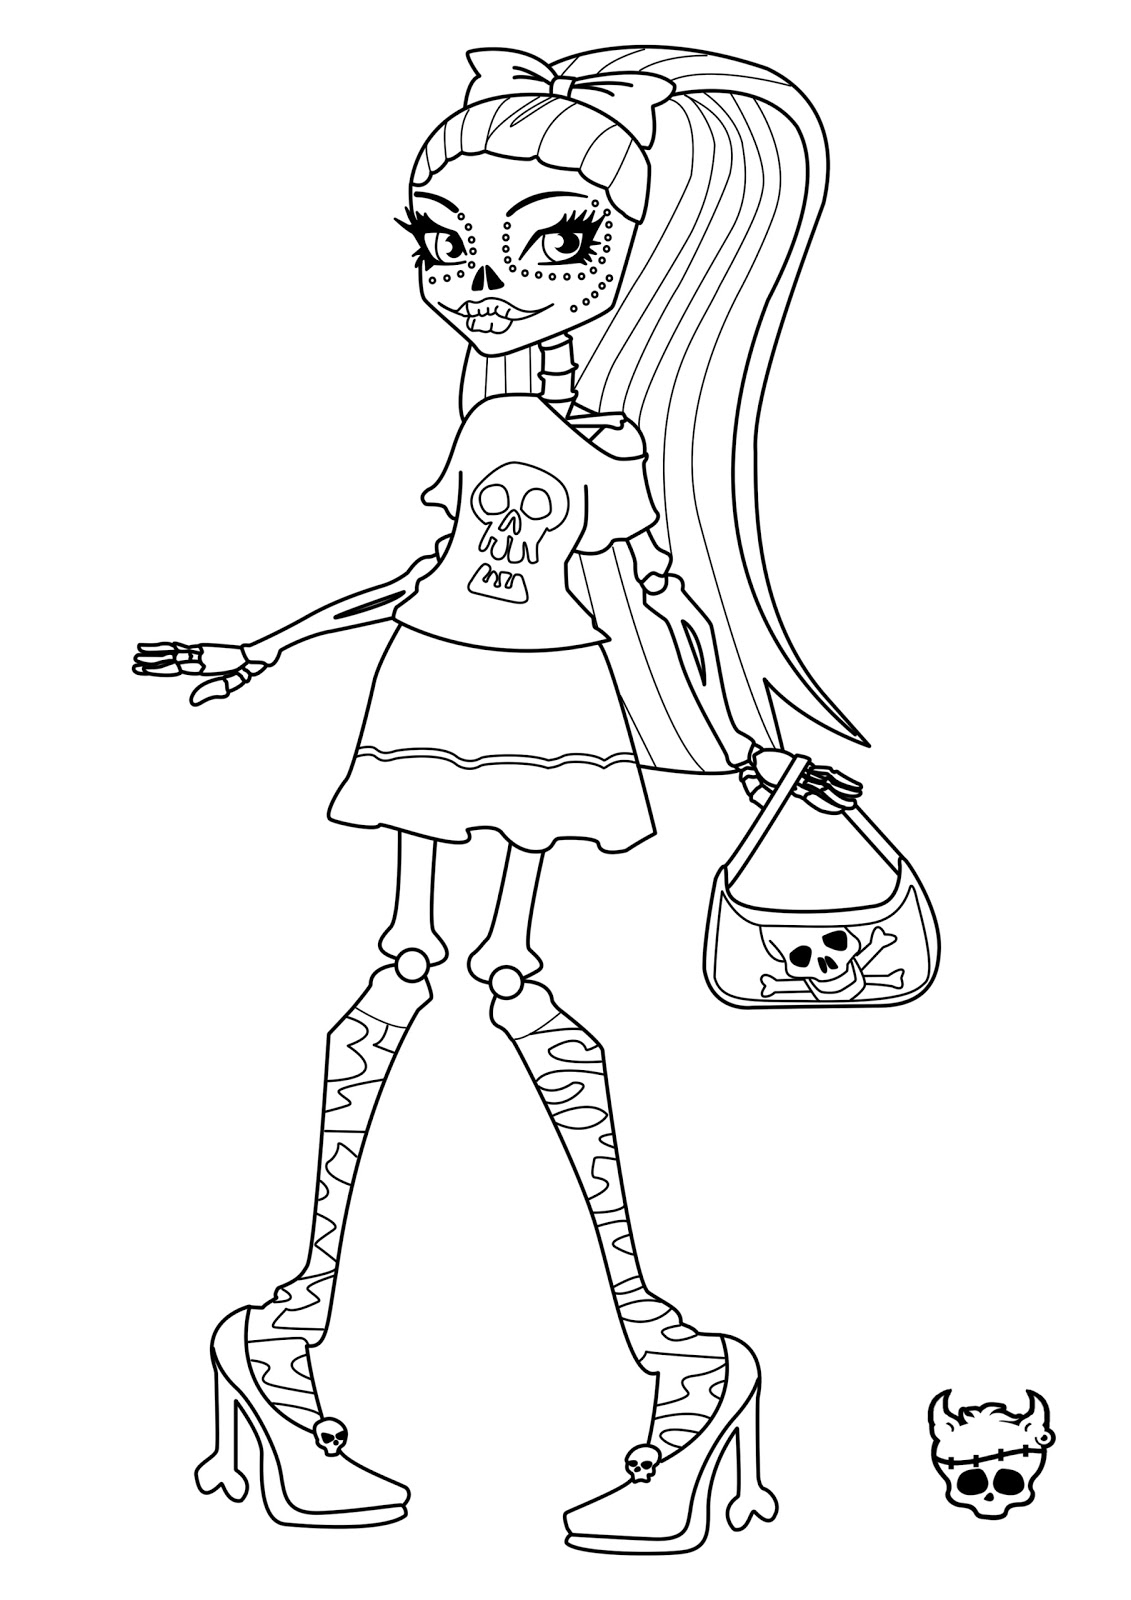 monster high coloring in coloring pages monster high coloring pages free and printable monster high in coloring 1 1